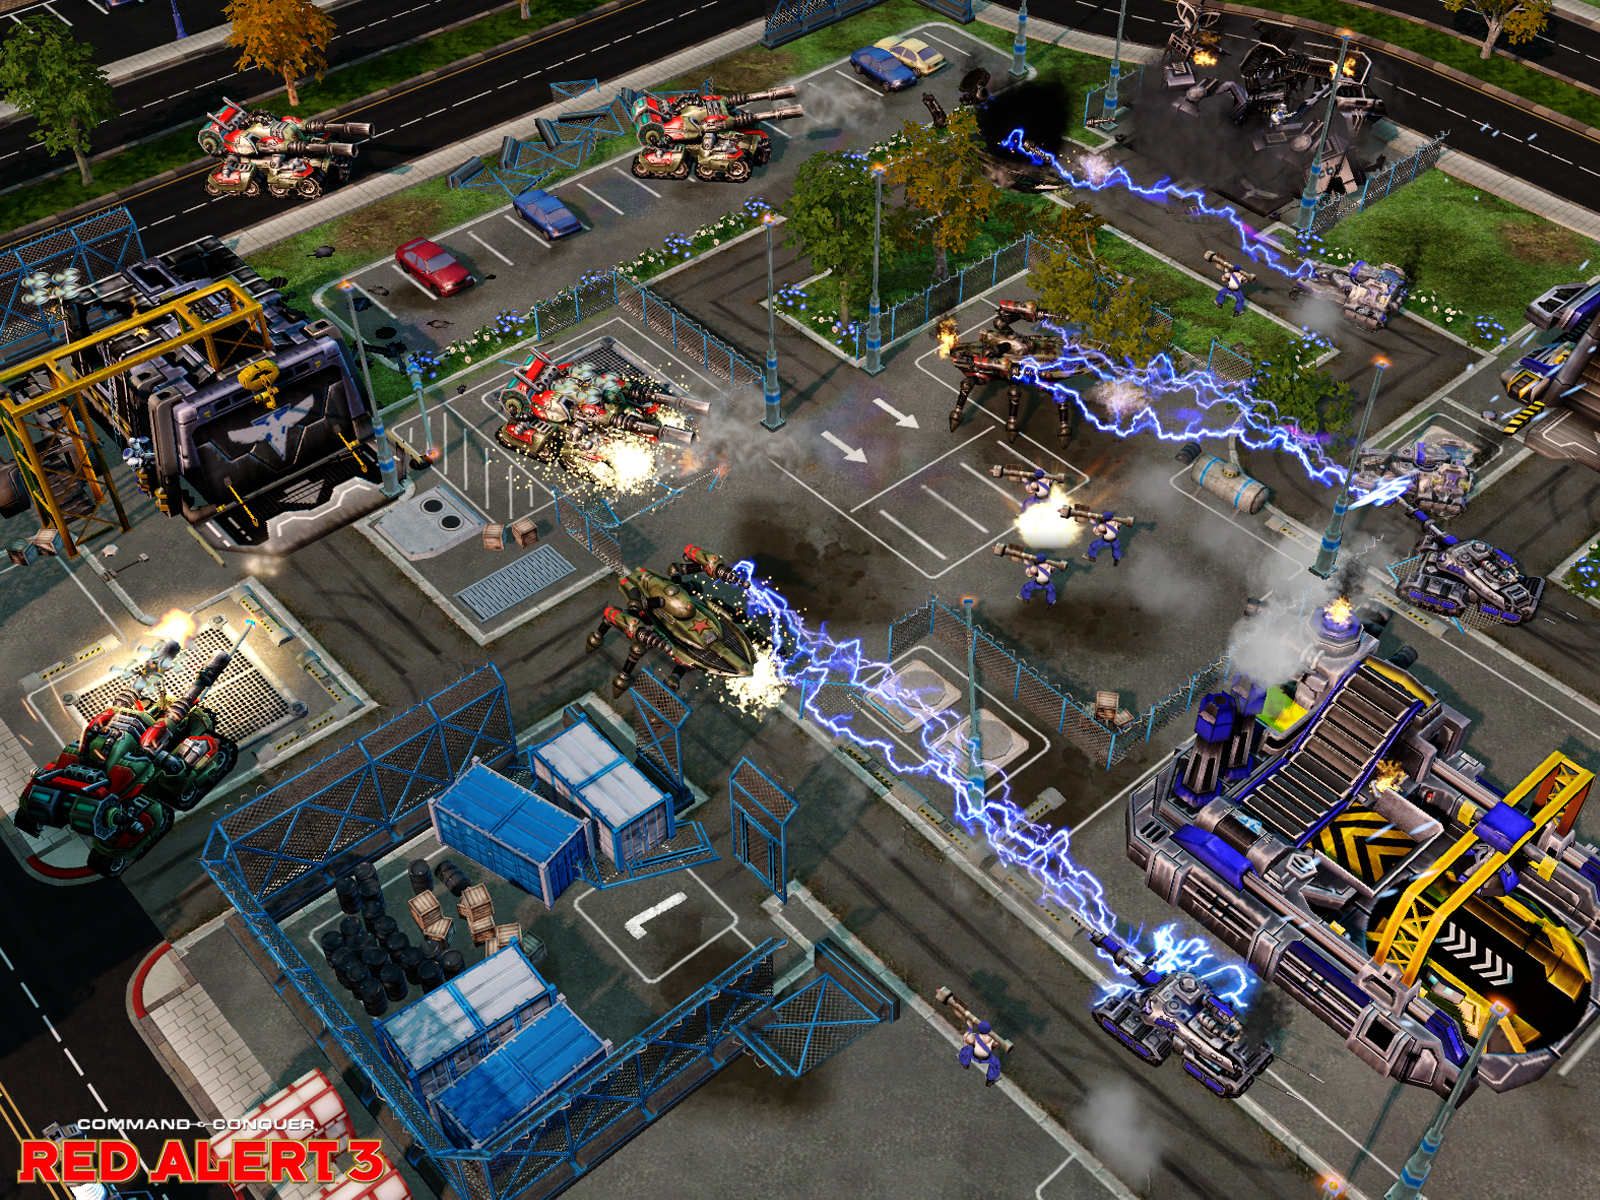 command and conquer red alert 3 download full version